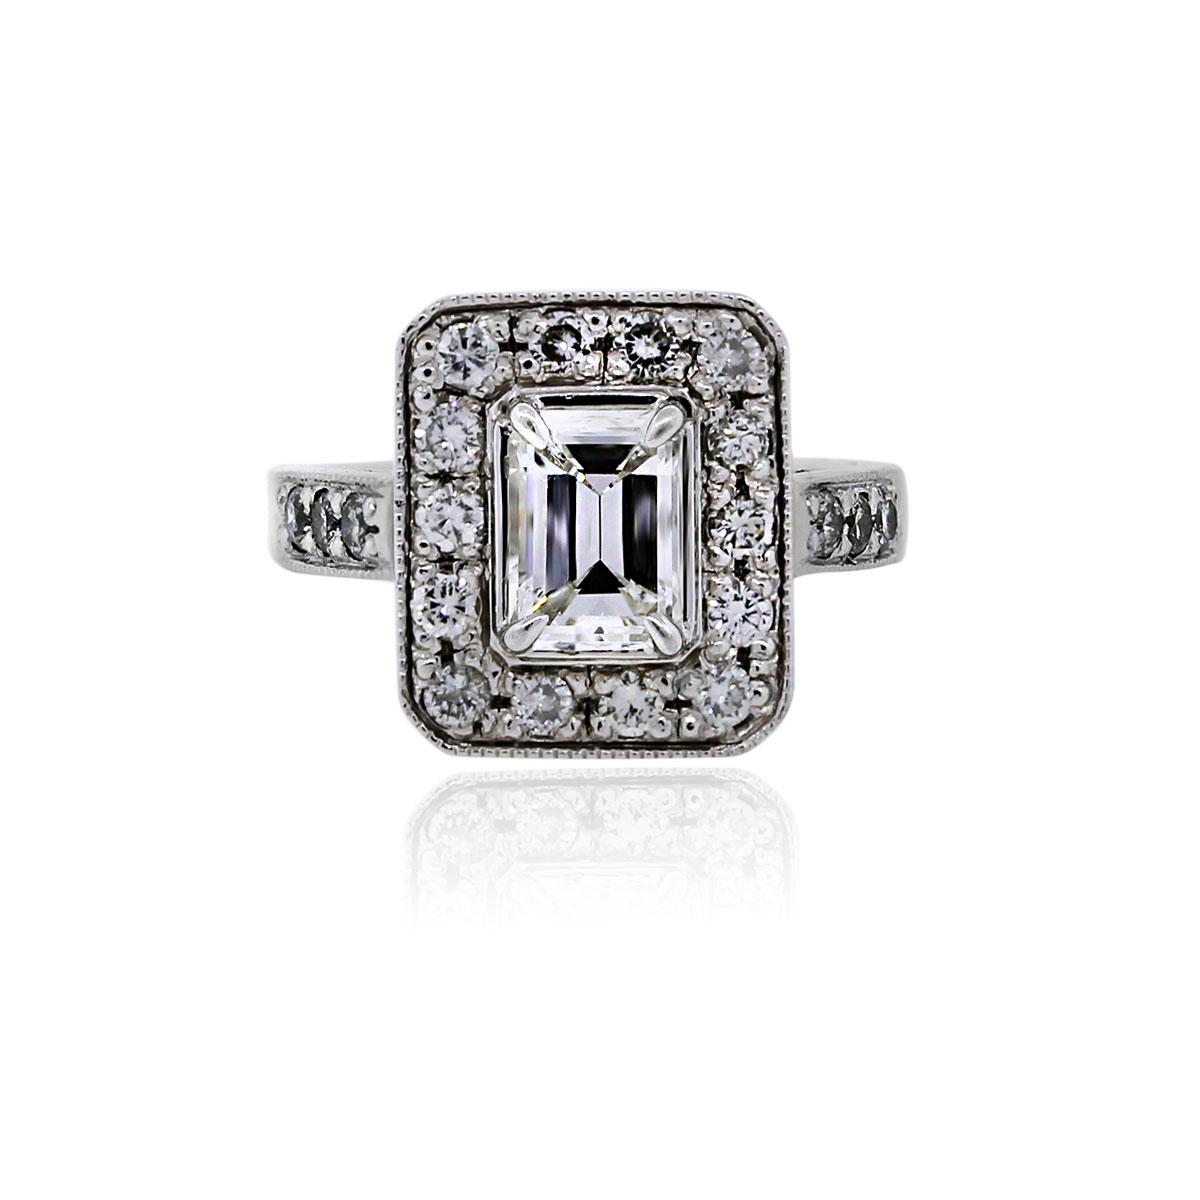 You are viewing this 14k White Gold 1.10ct Emerald Cut Diamond Engagement Ring!